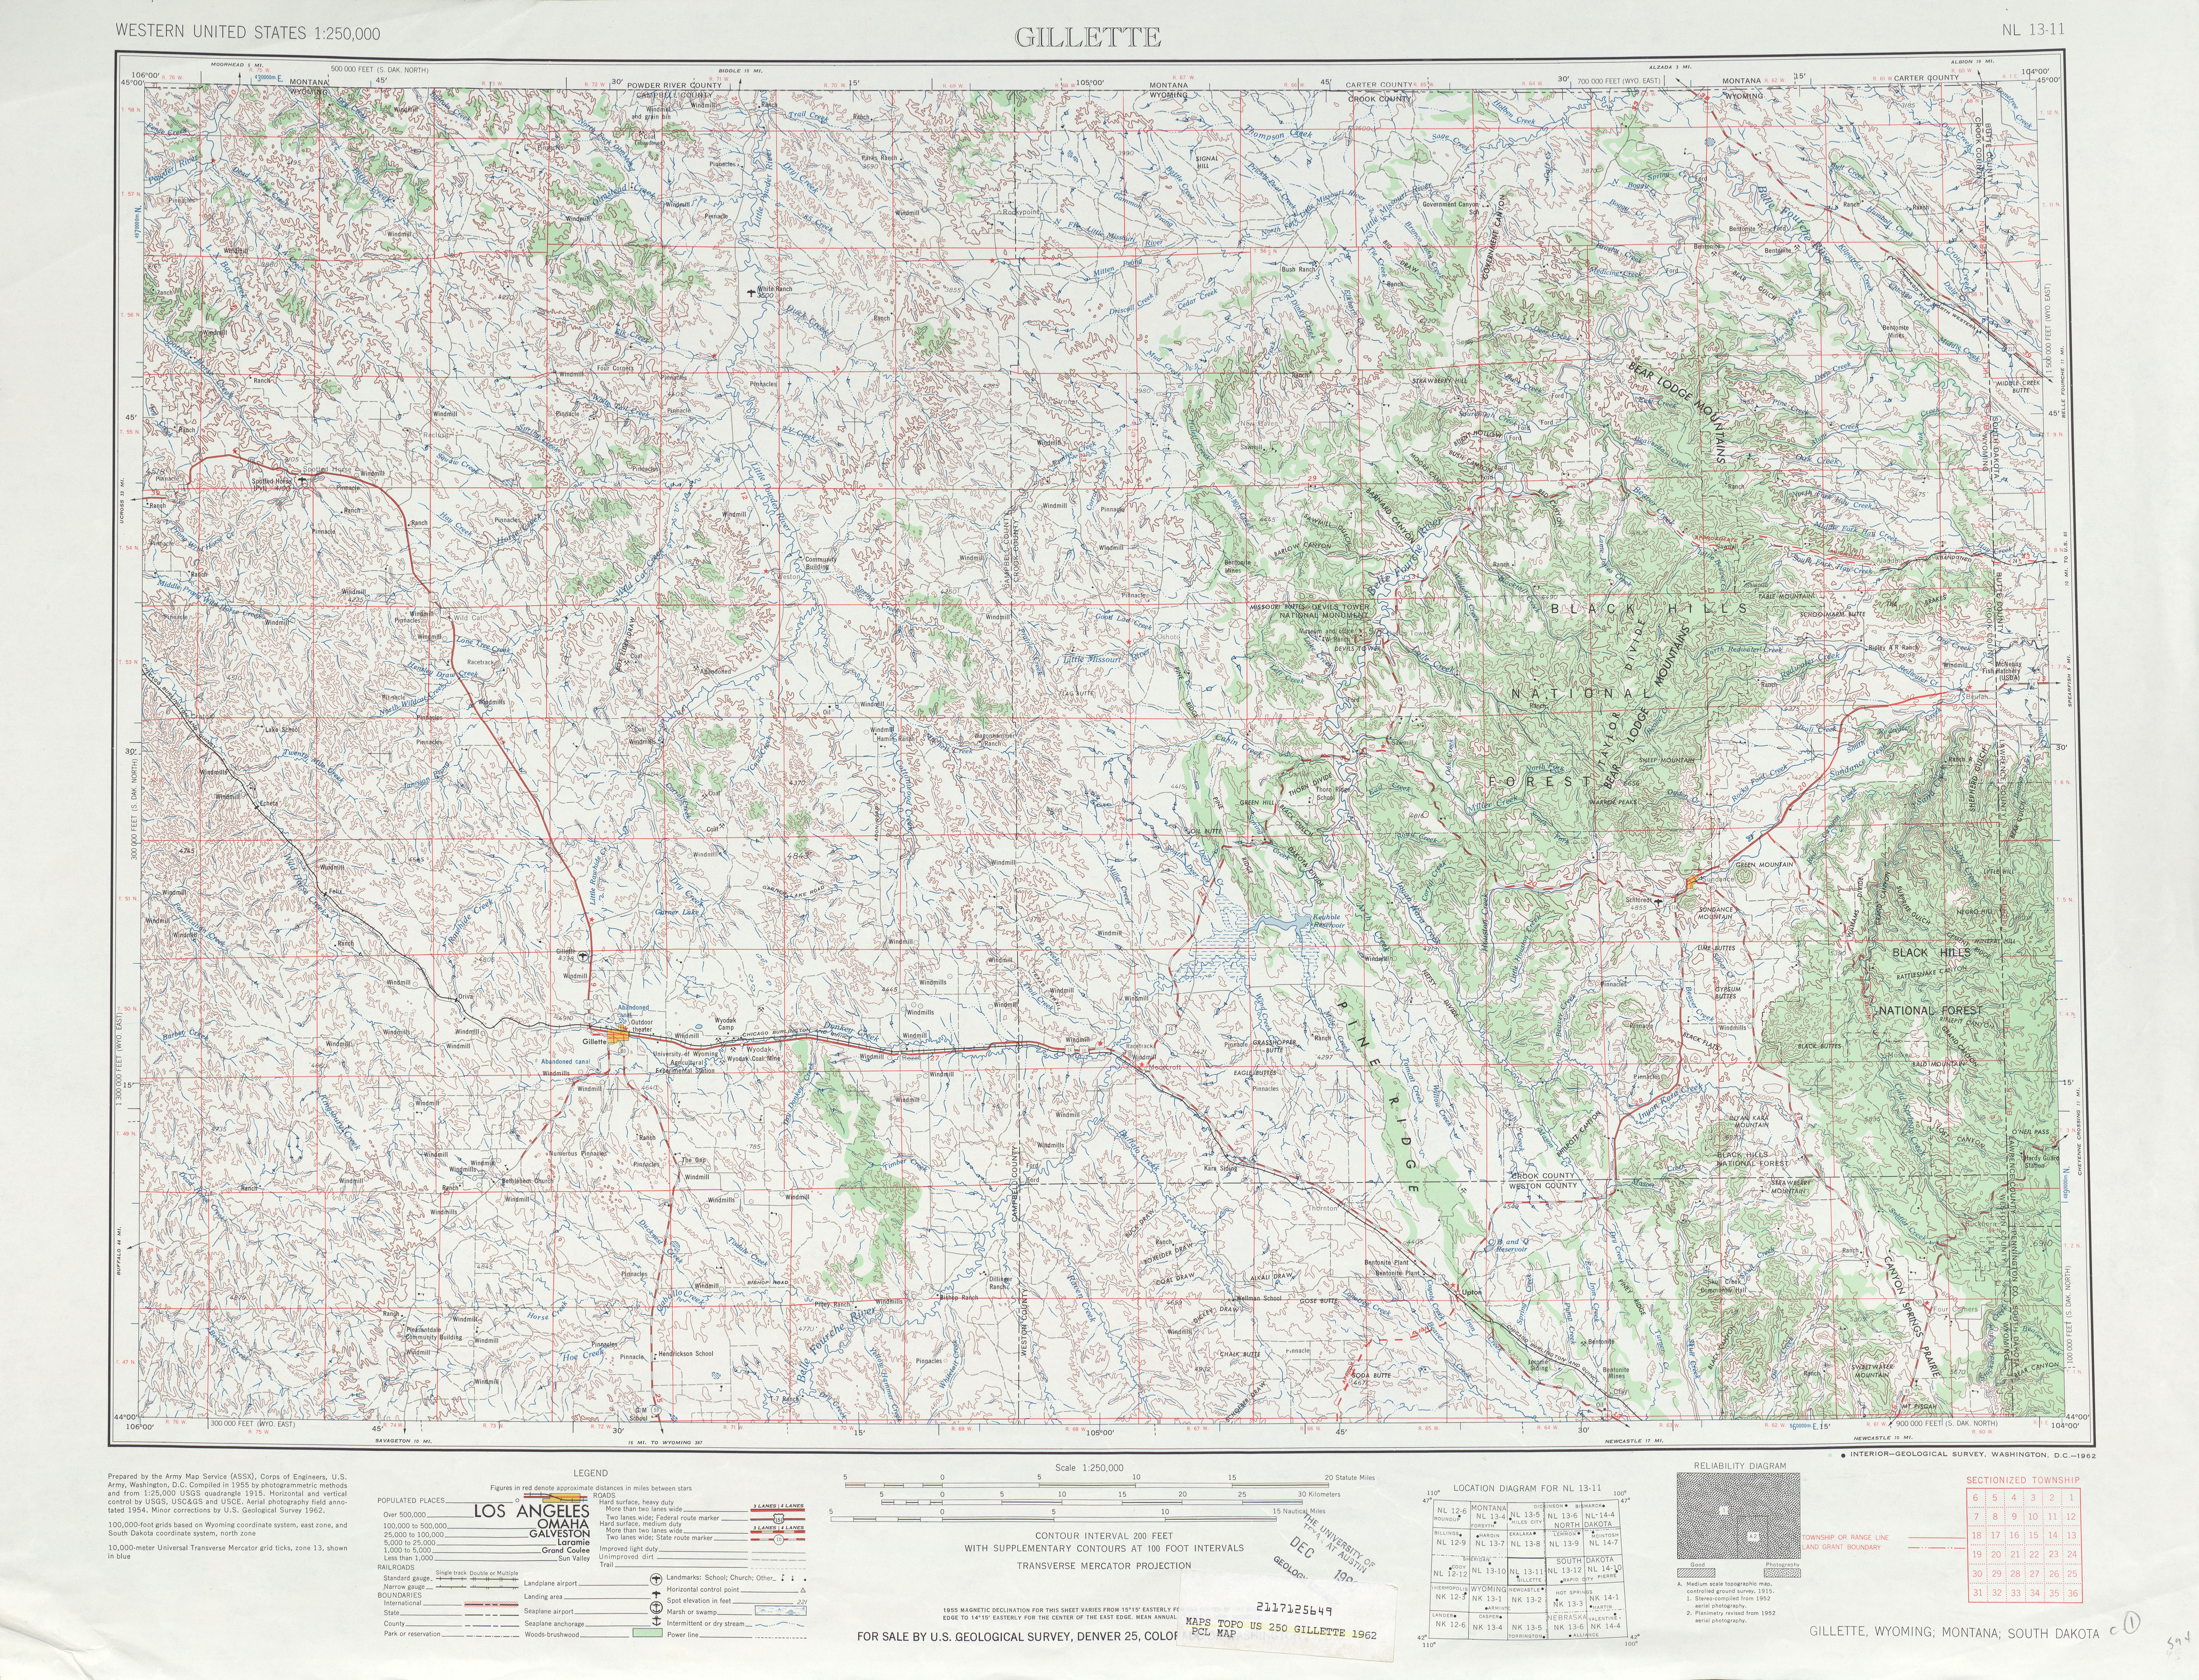 Gillette Topographic Map Sheet, United States 1962